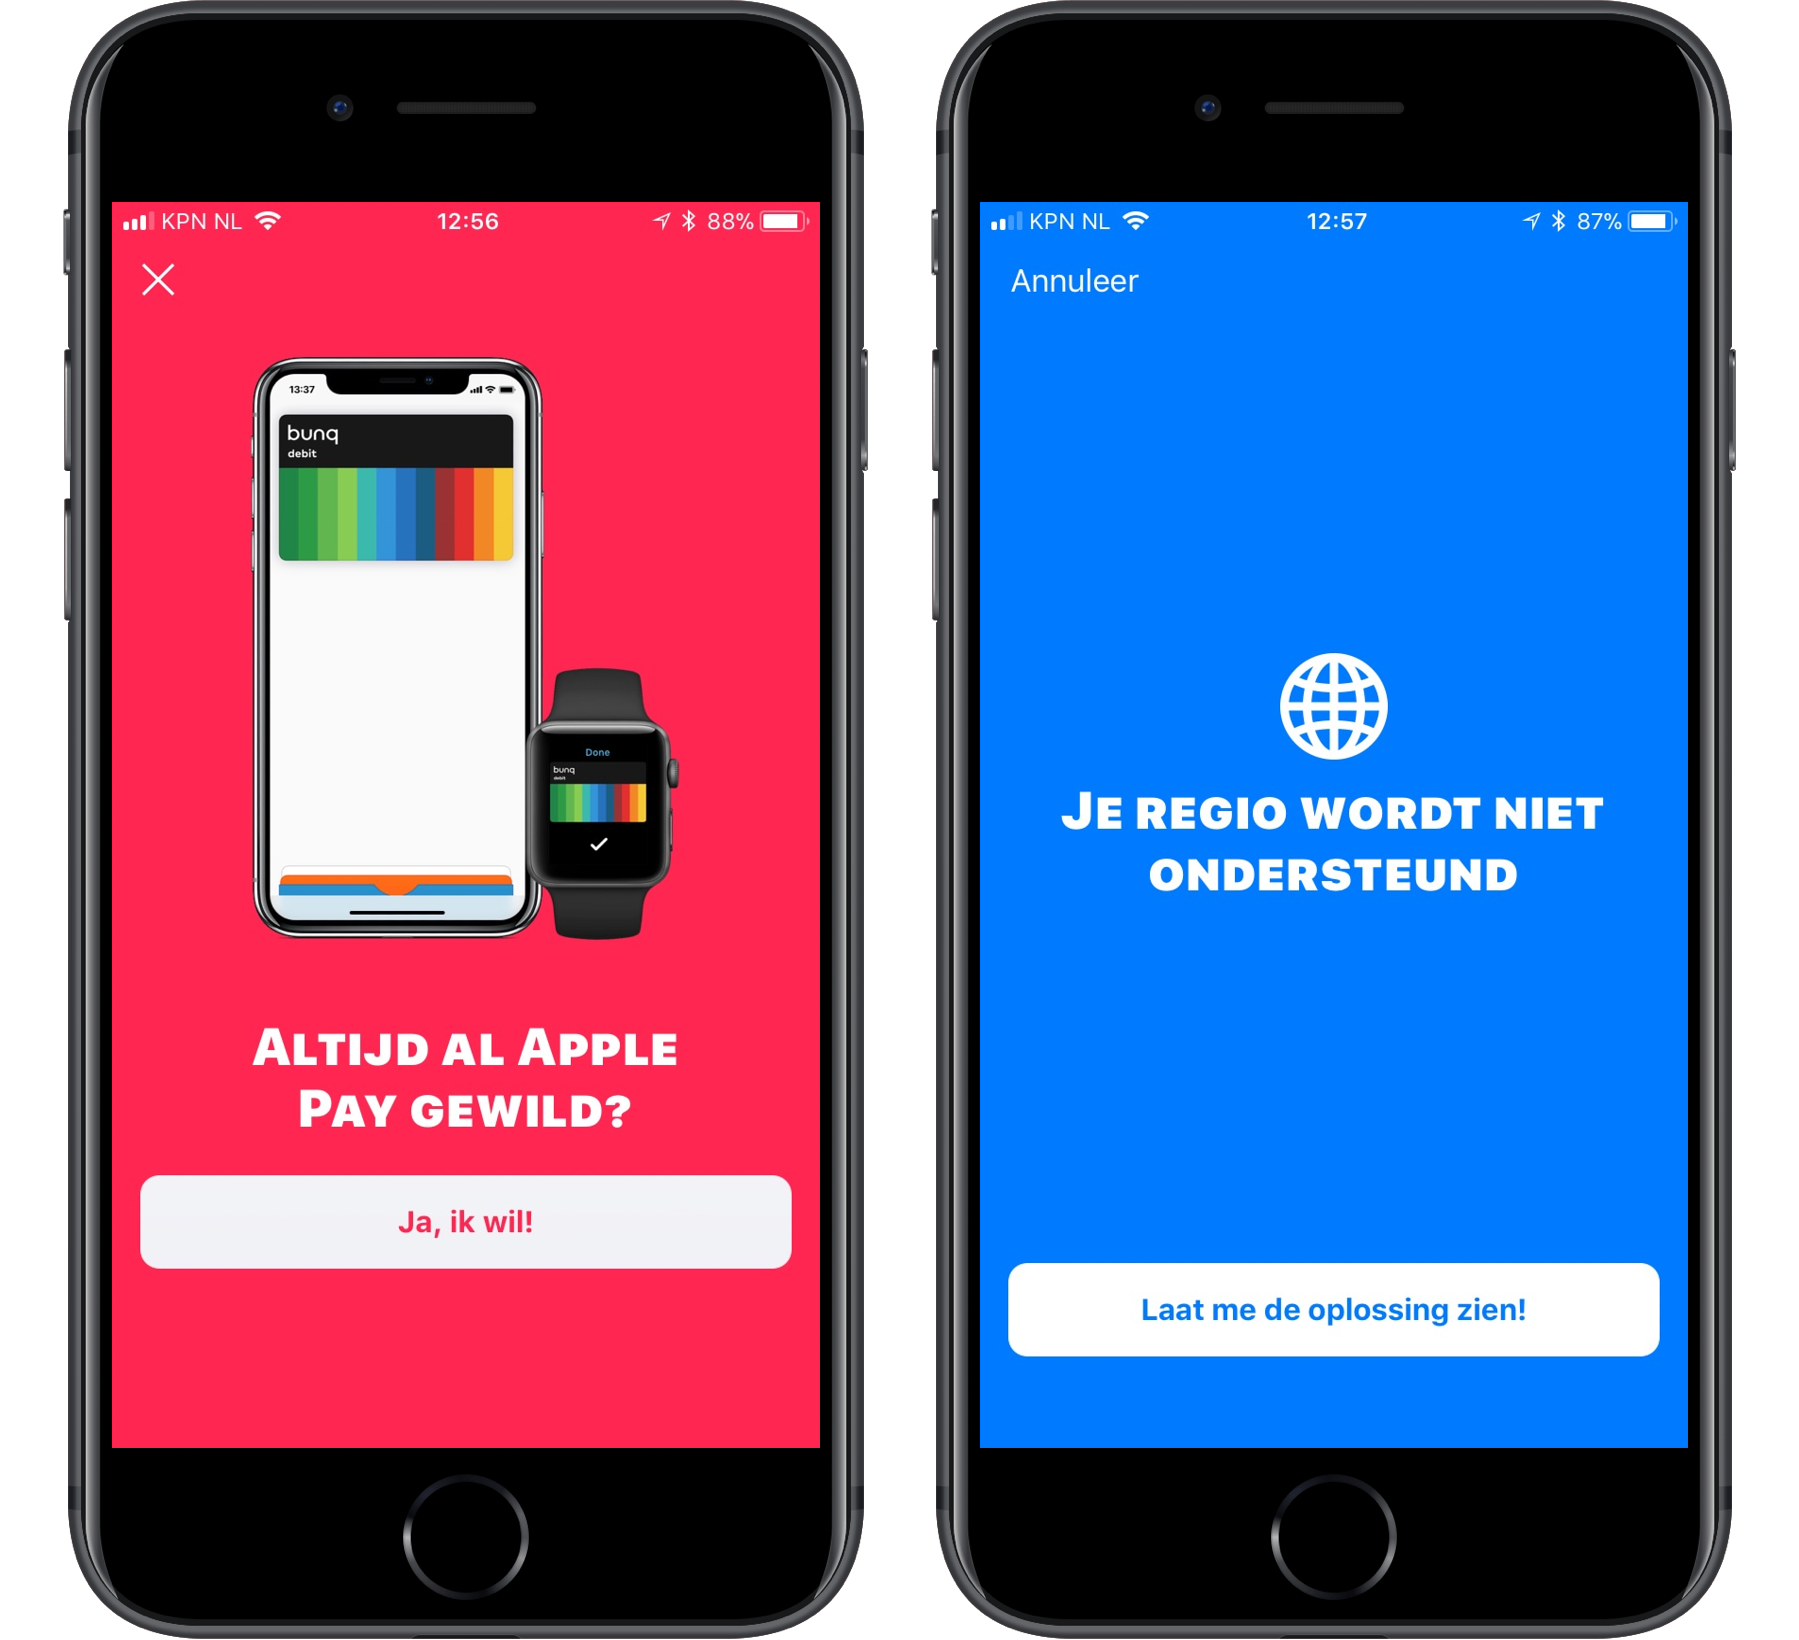 Apple Pay Nederland Bunq